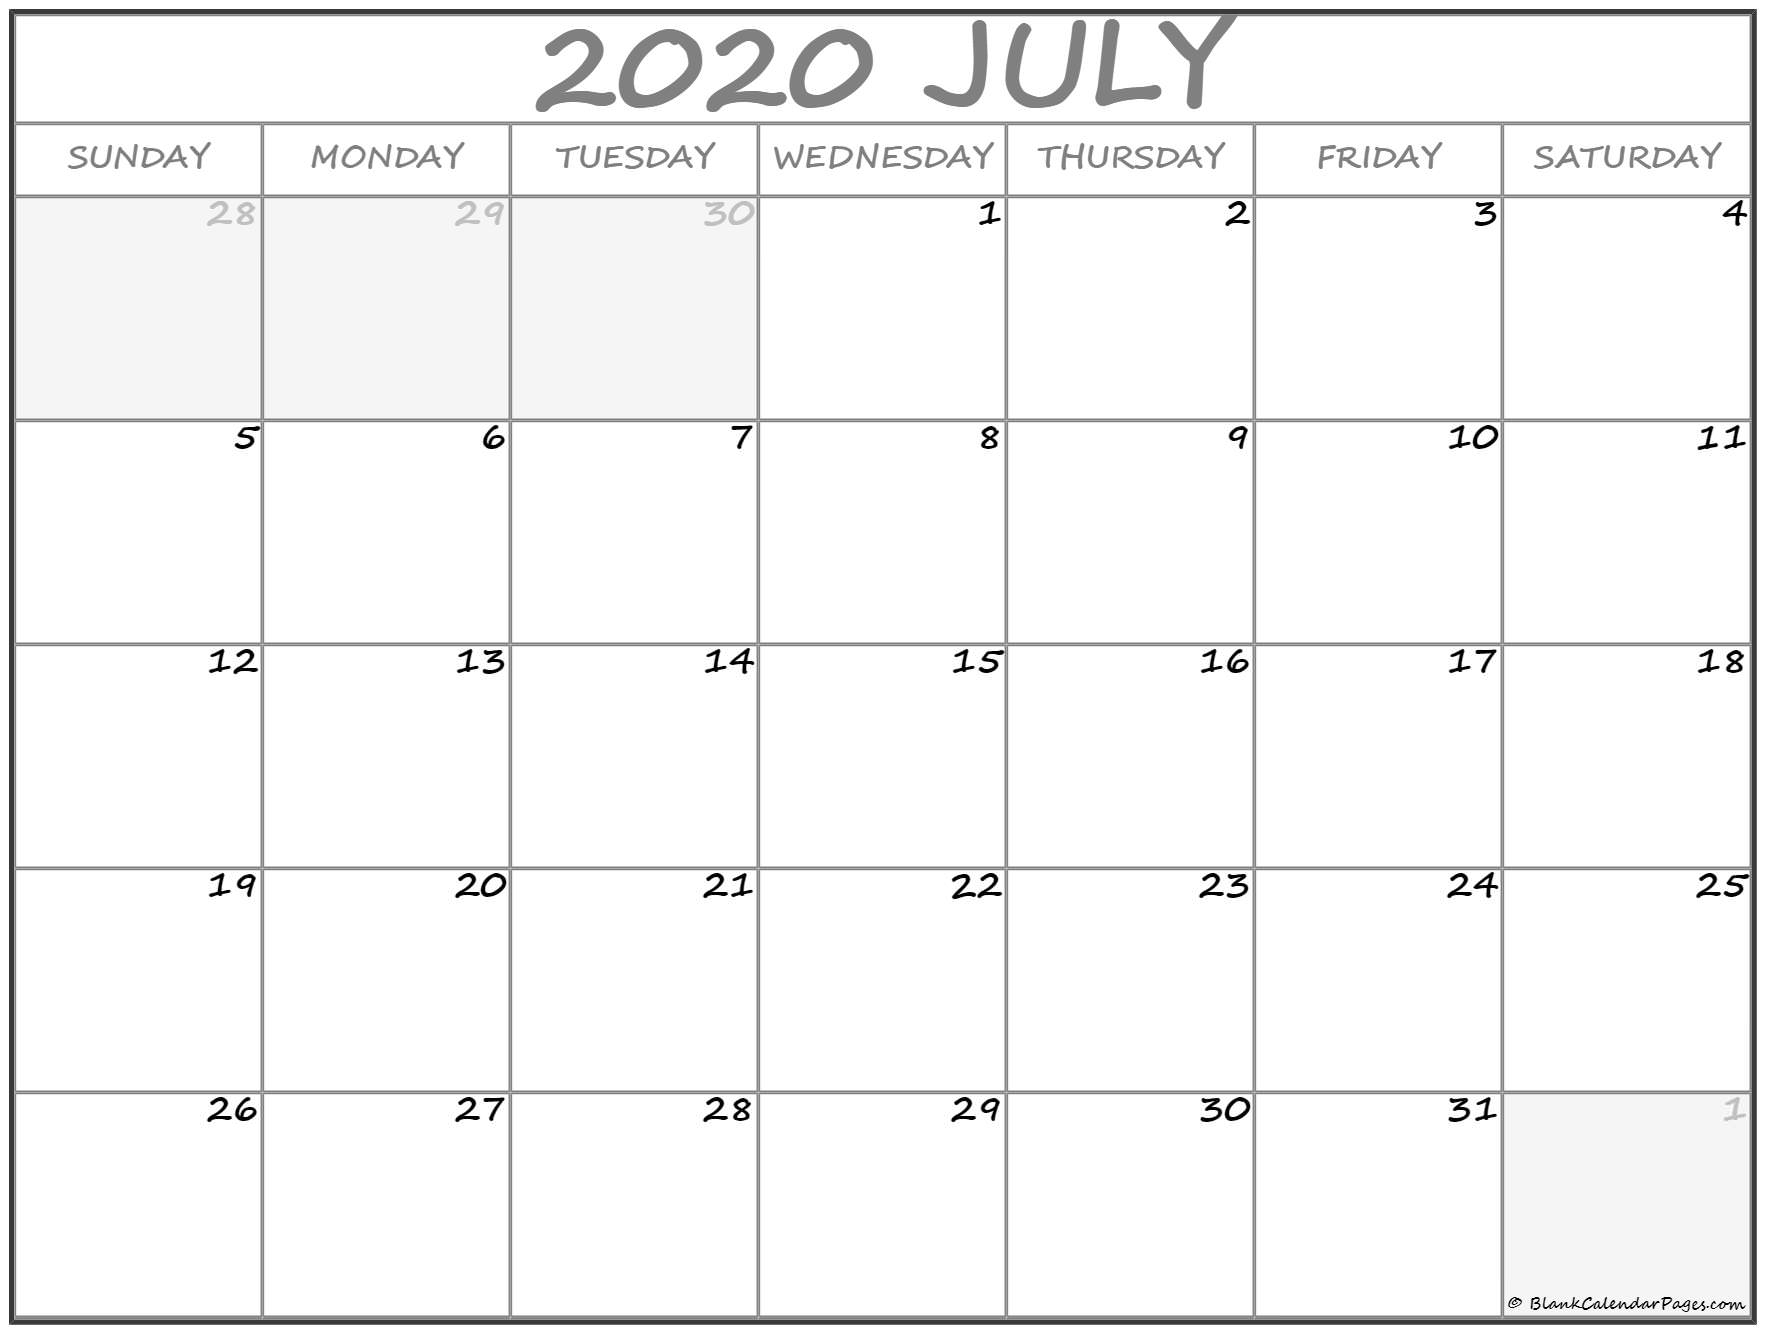 July 2020 Calendar | Free Printable Monthly Calendars intended for Print Free 2020 Calendar Without Downloading Weekly Writing